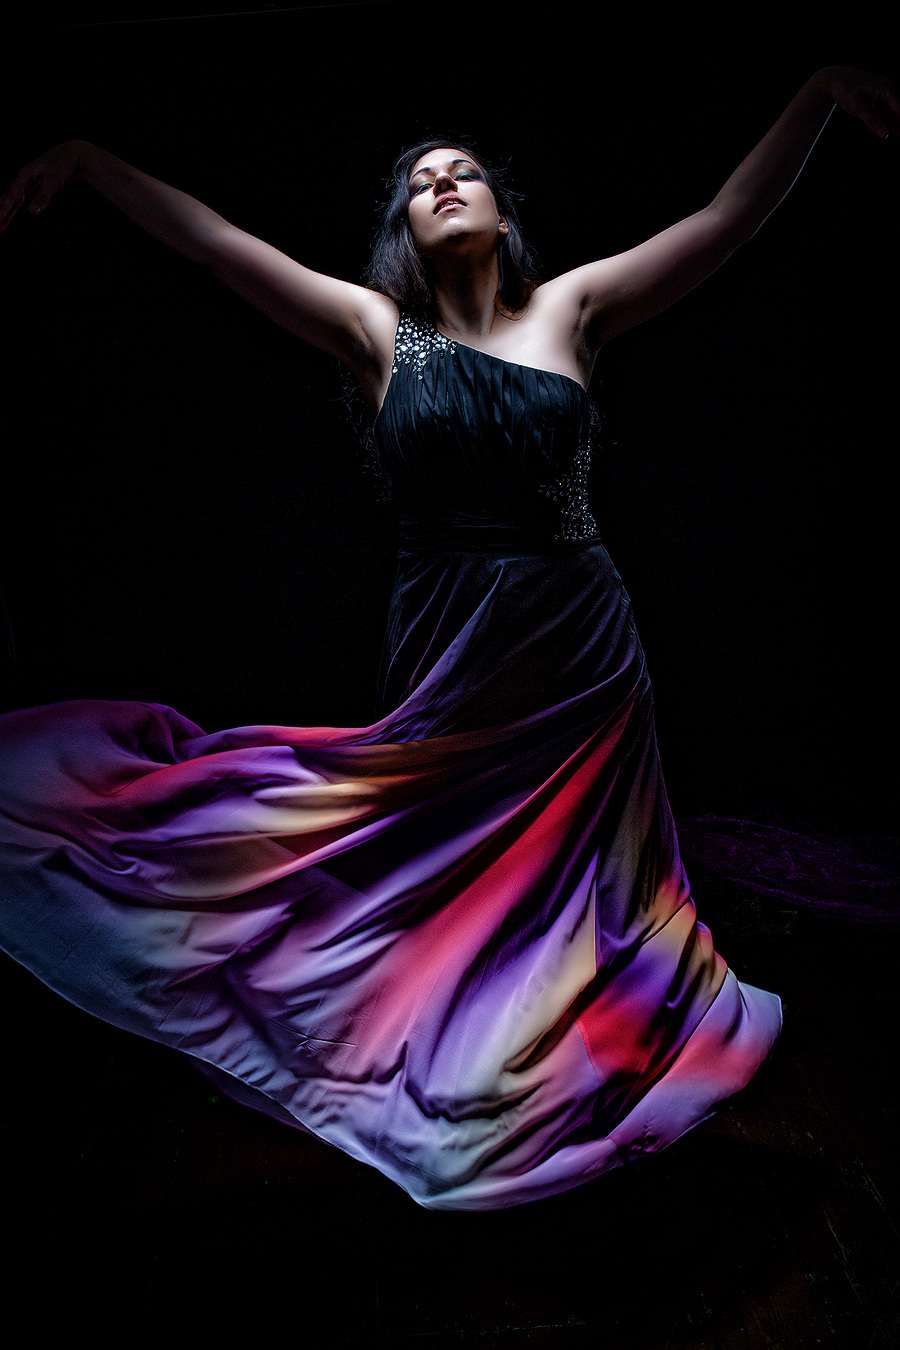 To live is to dance, to dance is to live / Photography by Stuart Runham (Pinupzania), Model phantom_elfsire / Uploaded 14th August 2020 @ 04:42 PM